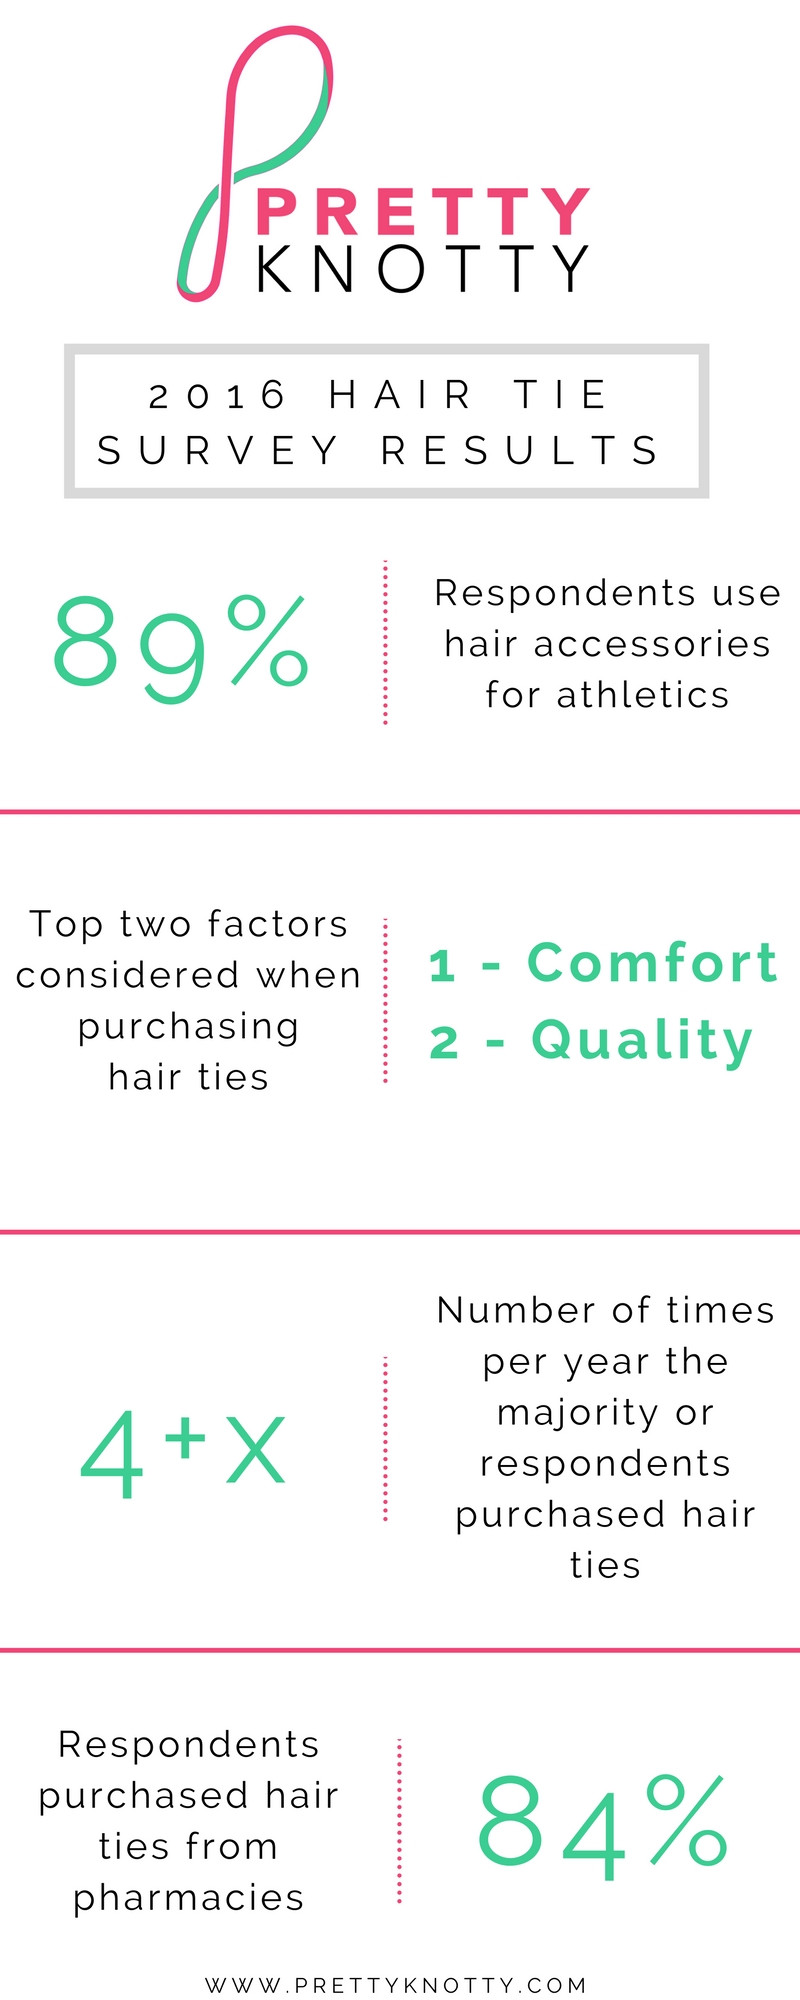 Pretty Knotty 2016 Hair Tie Survey Results Infographic